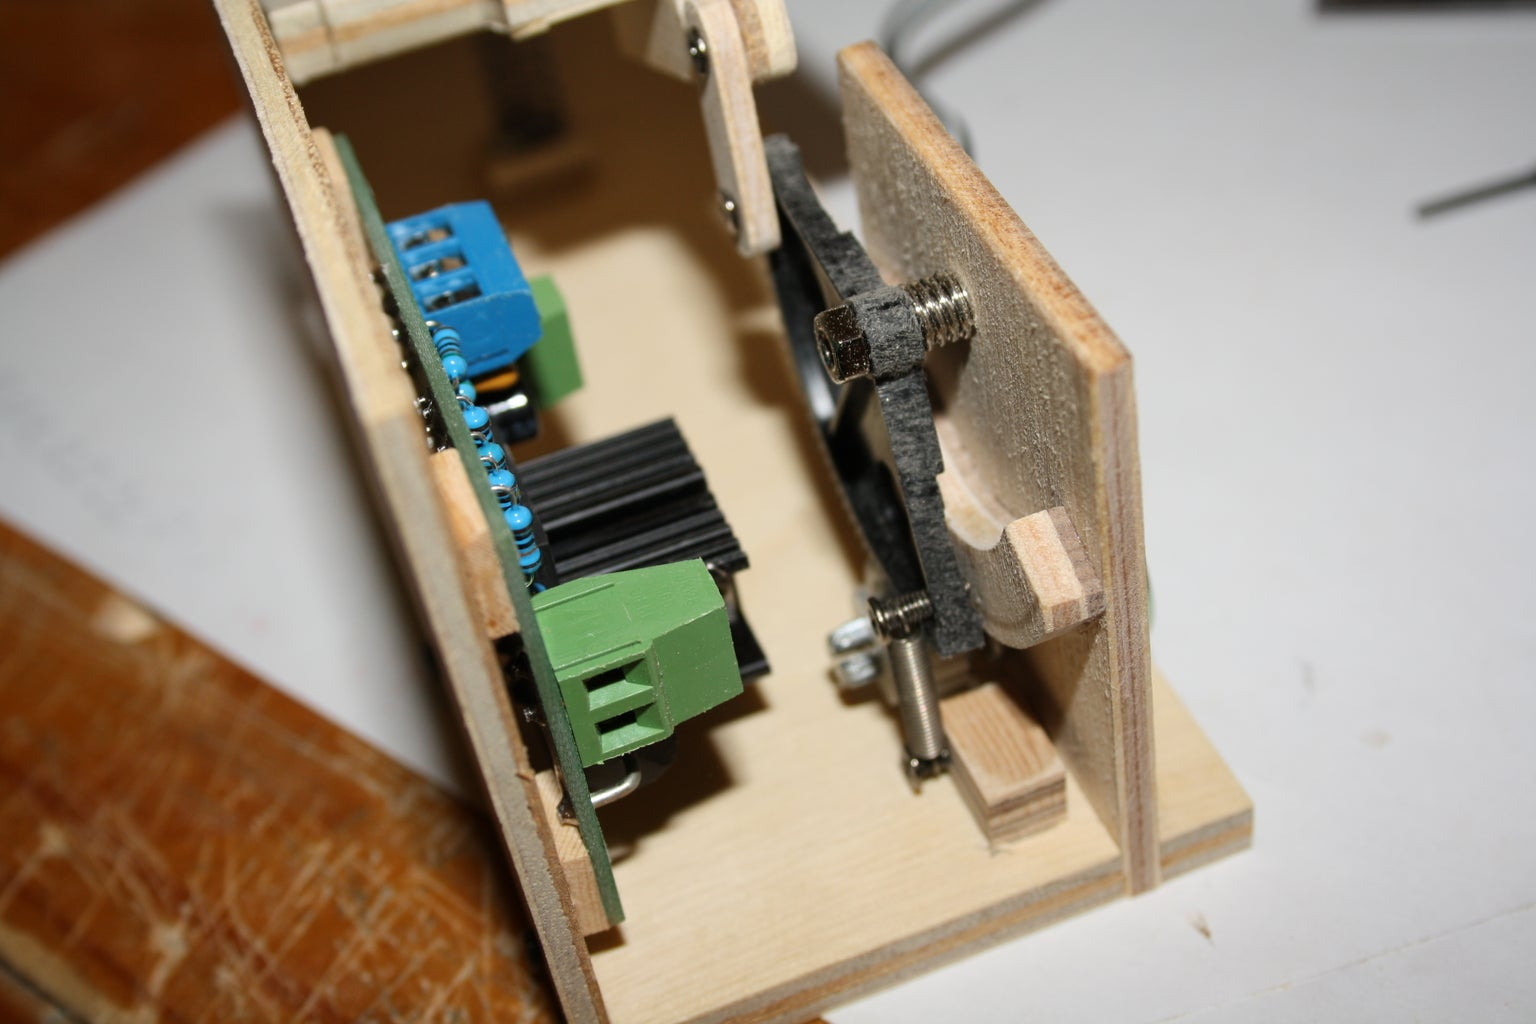 The Foot Pedal | Enclosing the Internals